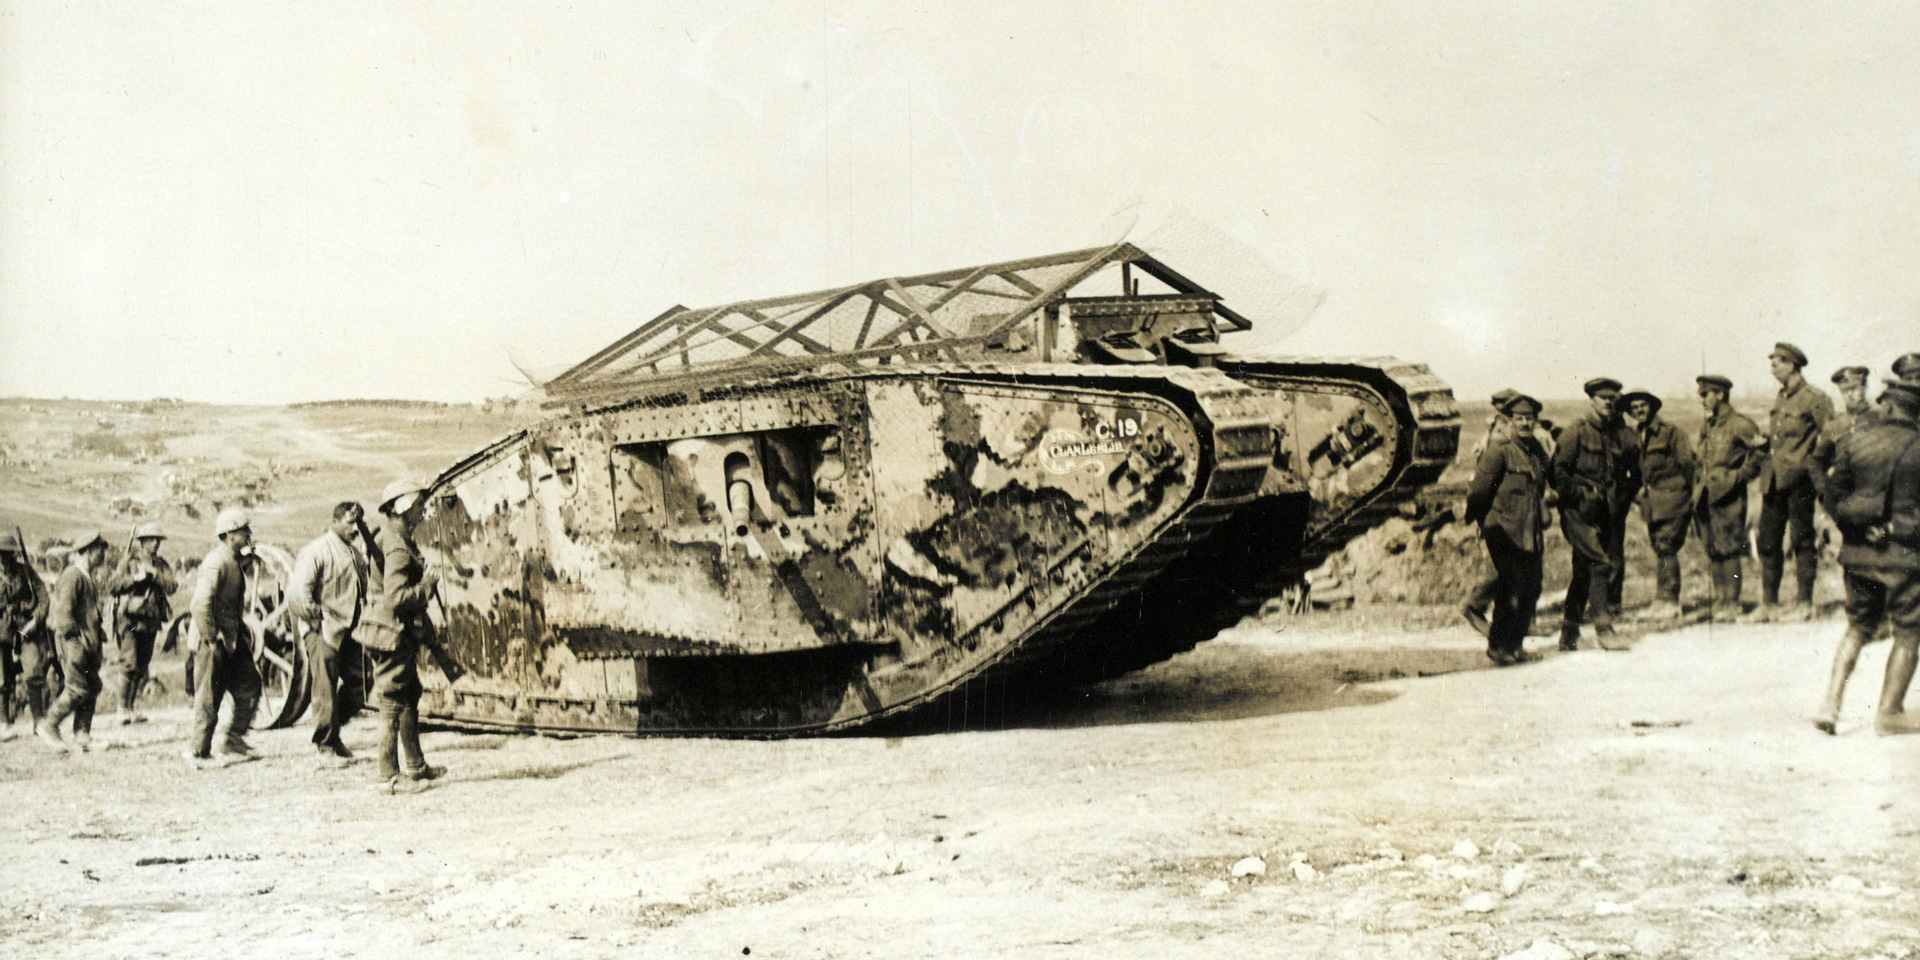 A tank making its way to the front line at Flers, 15 September 1916